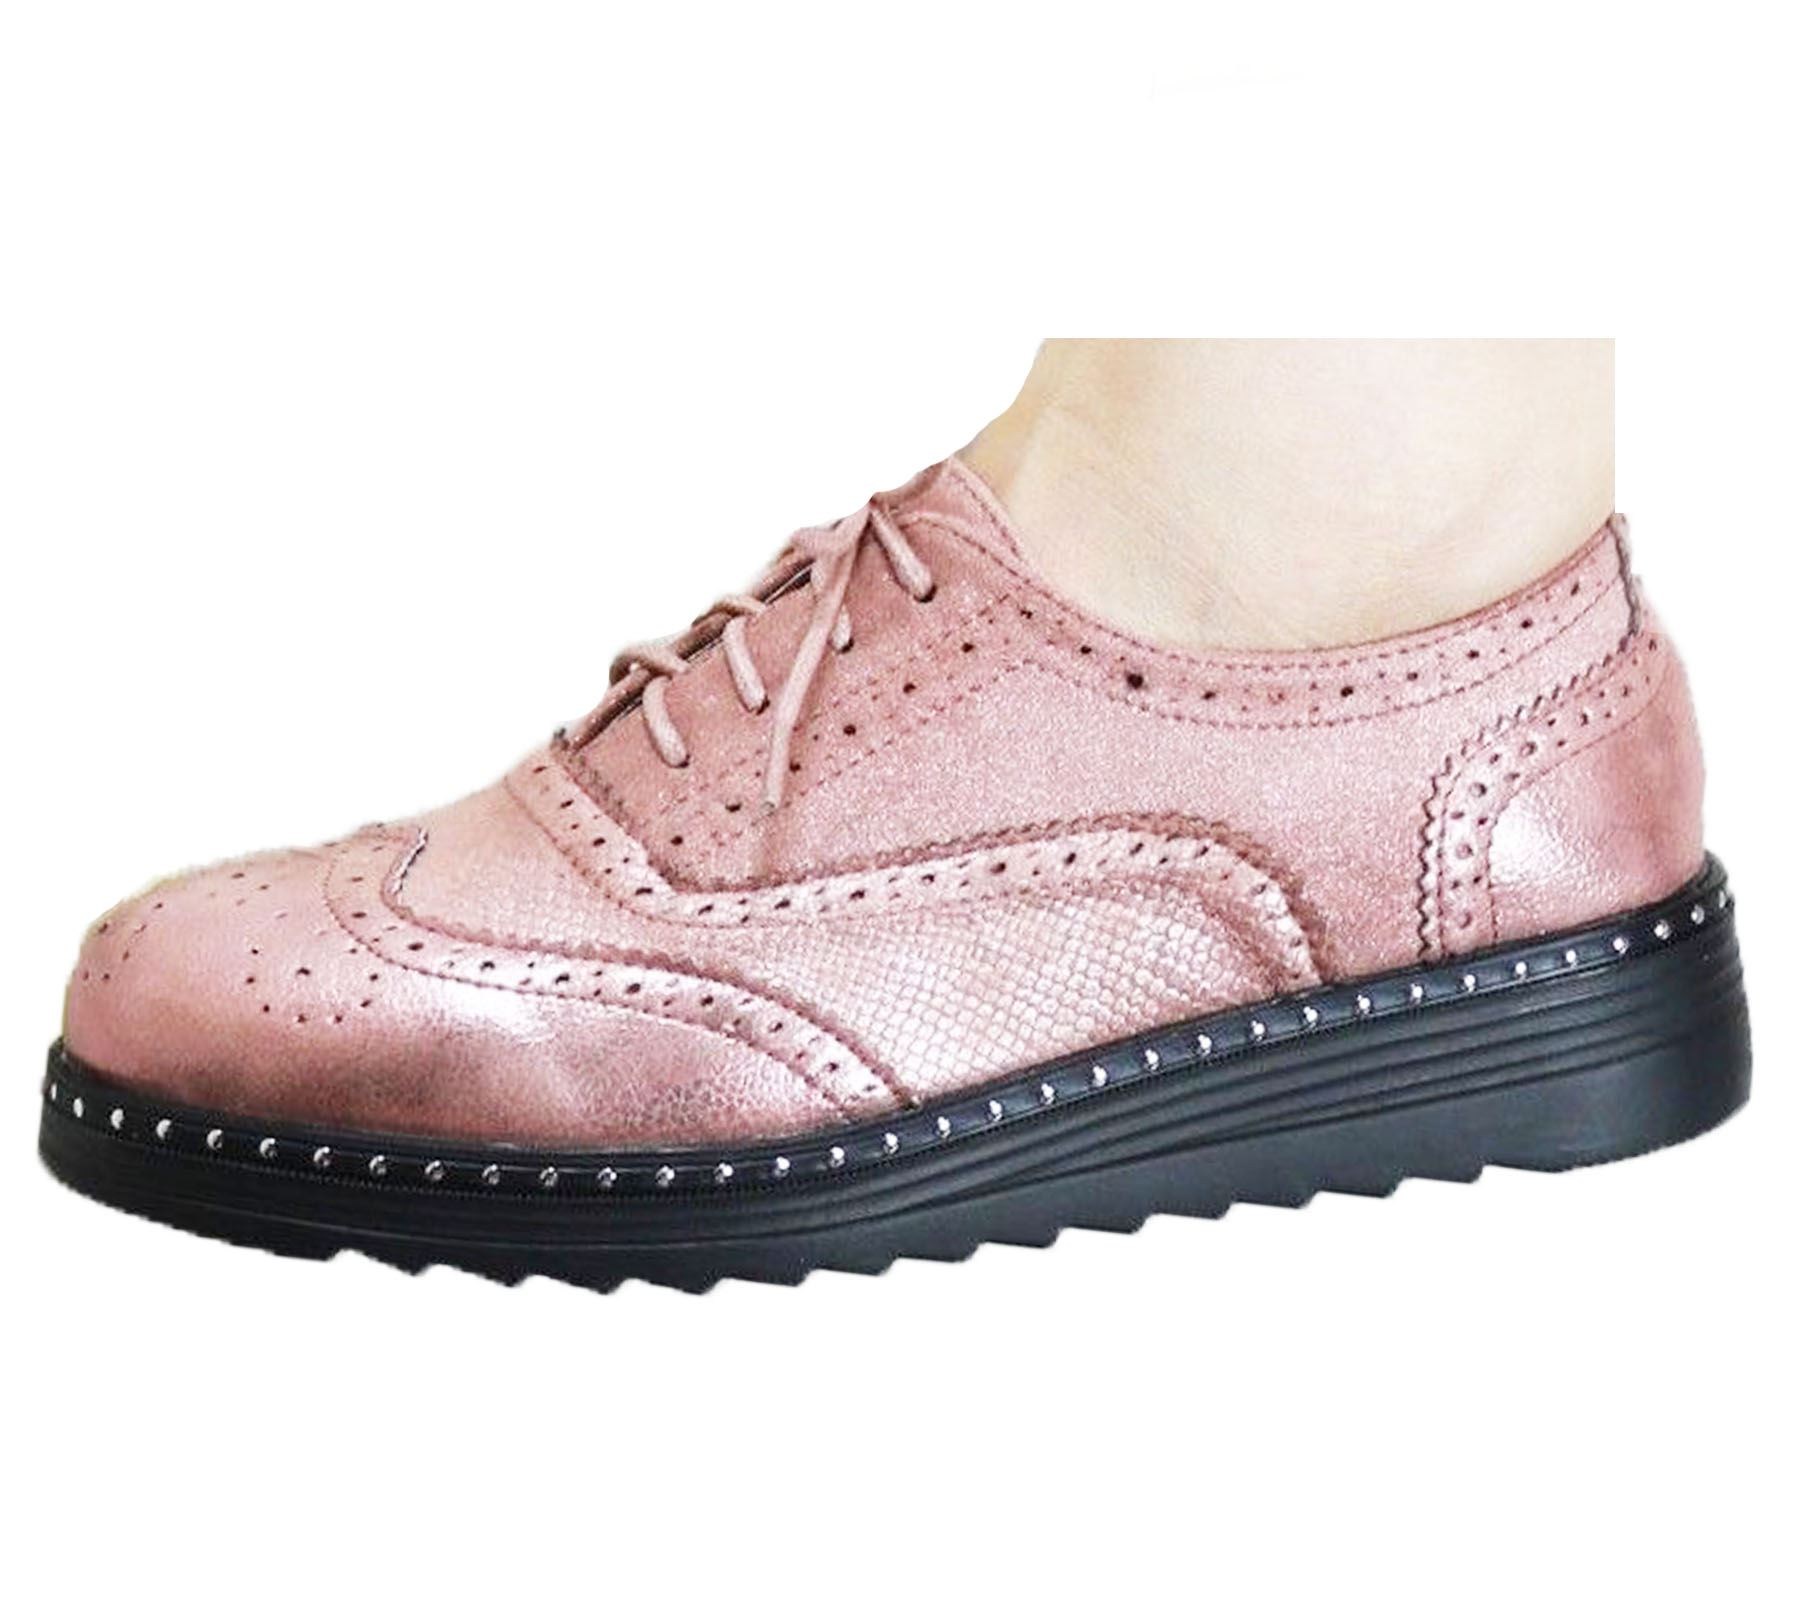 Ladies-Brogue-Lace-Up-Shoes-Womens-Oxford-Smart-Office-Loafers-Shoes miniatura 30